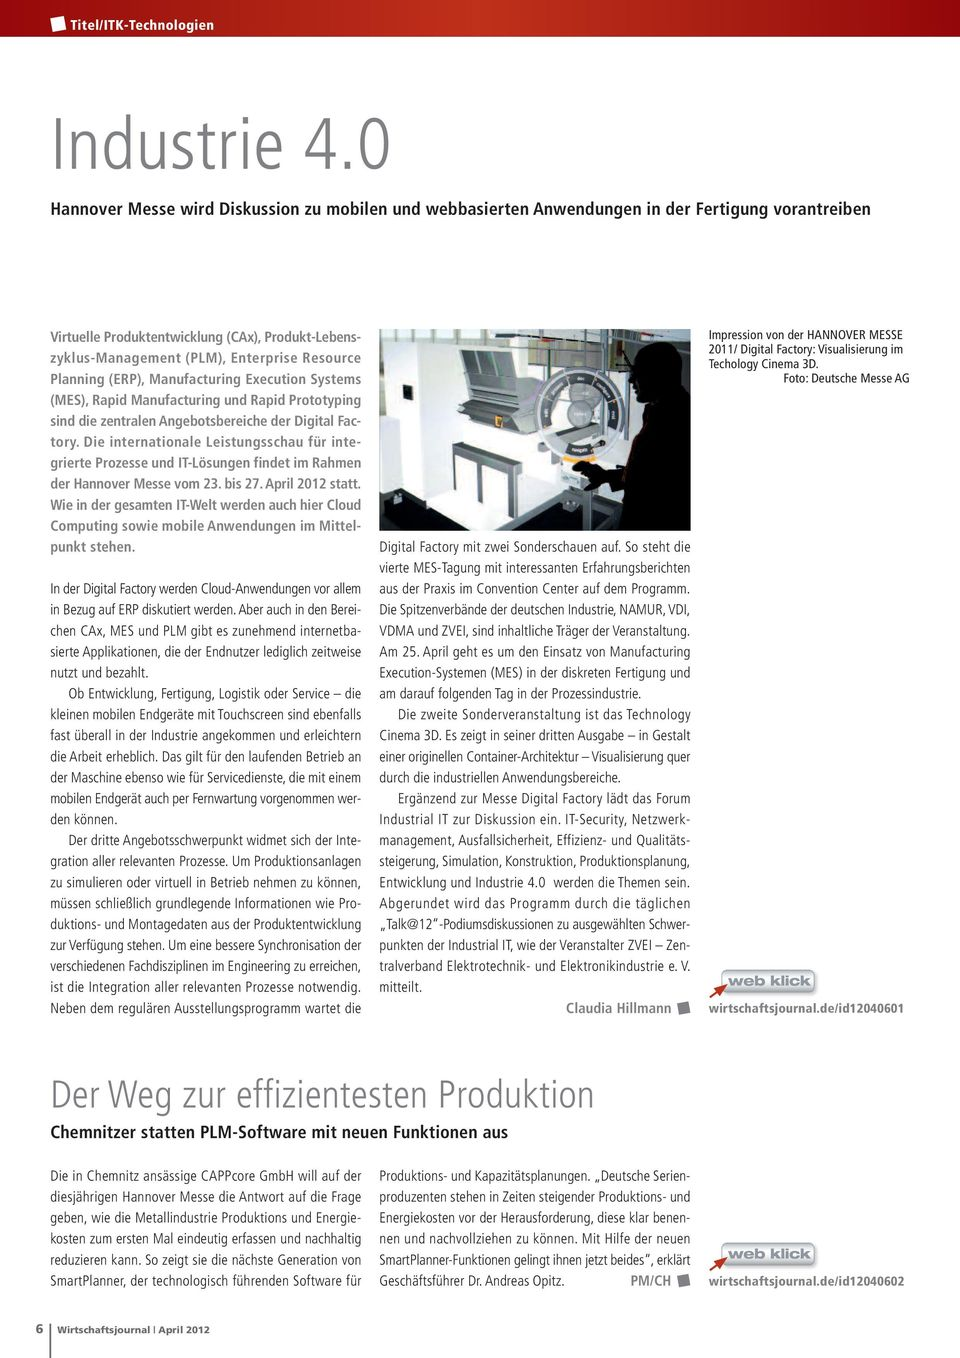 Planning (ERP), Manufacturing Execution Systems (MES), Rapid Manufacturing und Rapid Prototyping sind die zentralen Angebotsbereiche der Digital Factory.